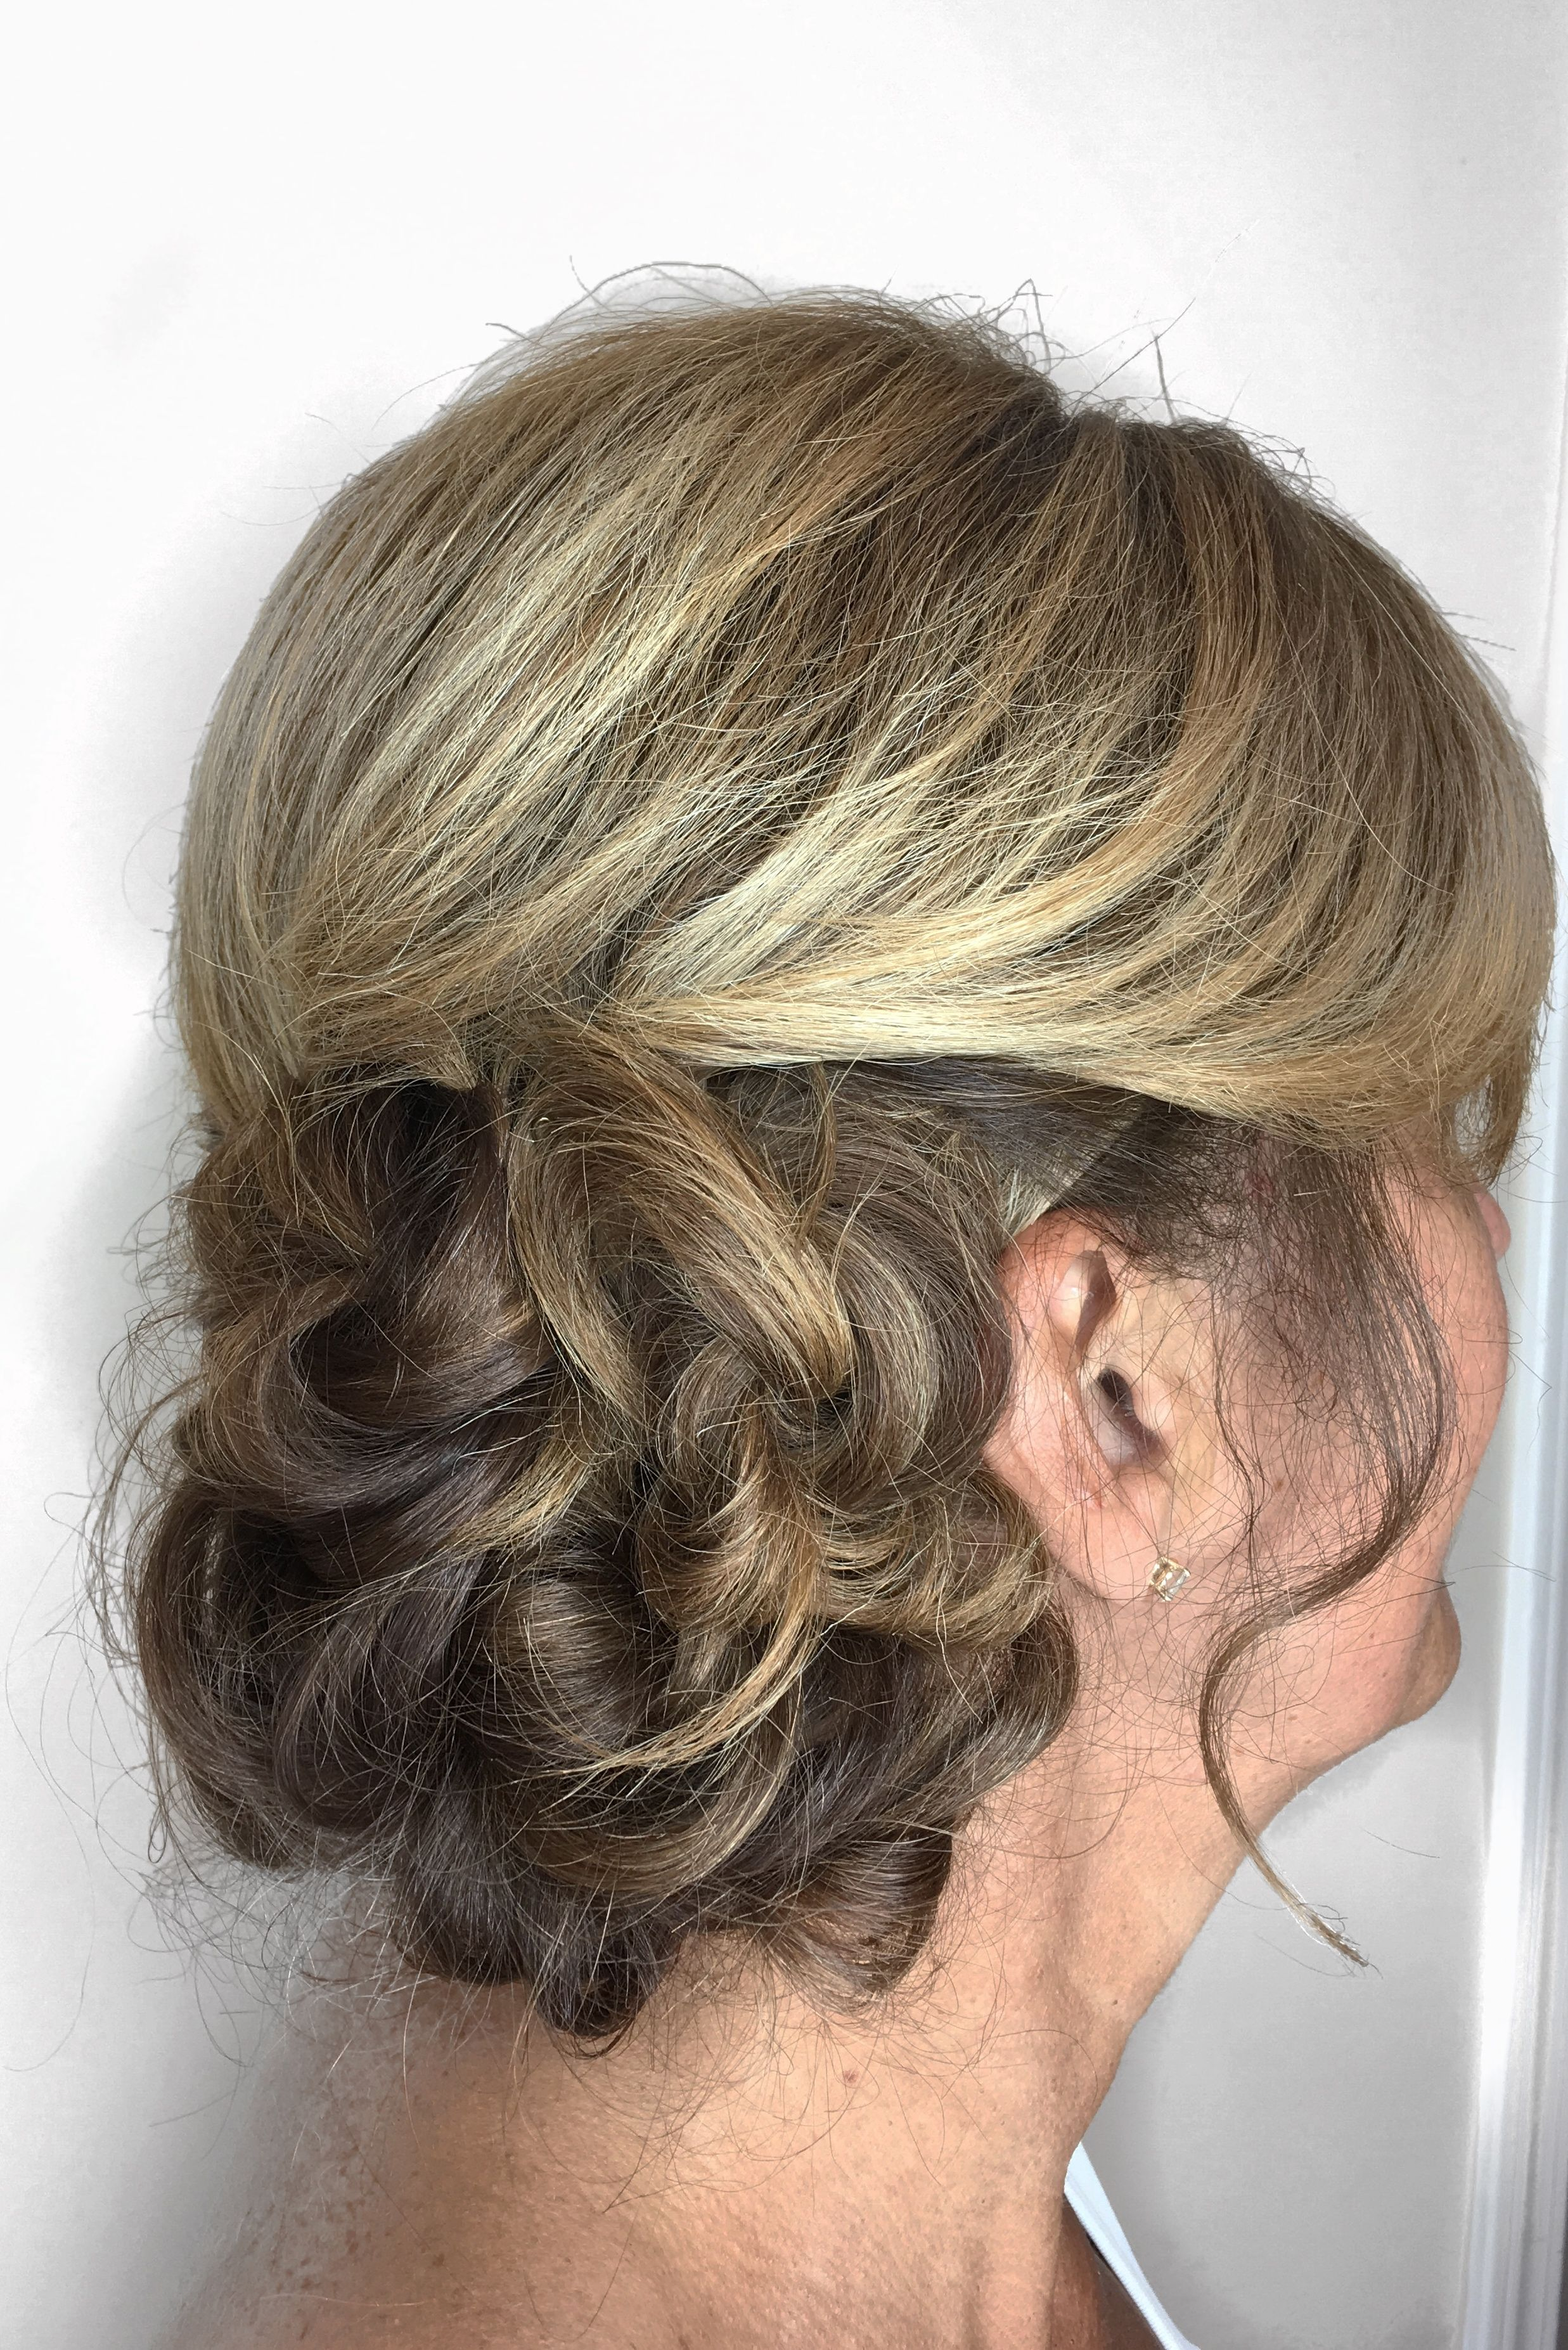 Curly side bun | Curly side buns, Hair styles, Prom hair